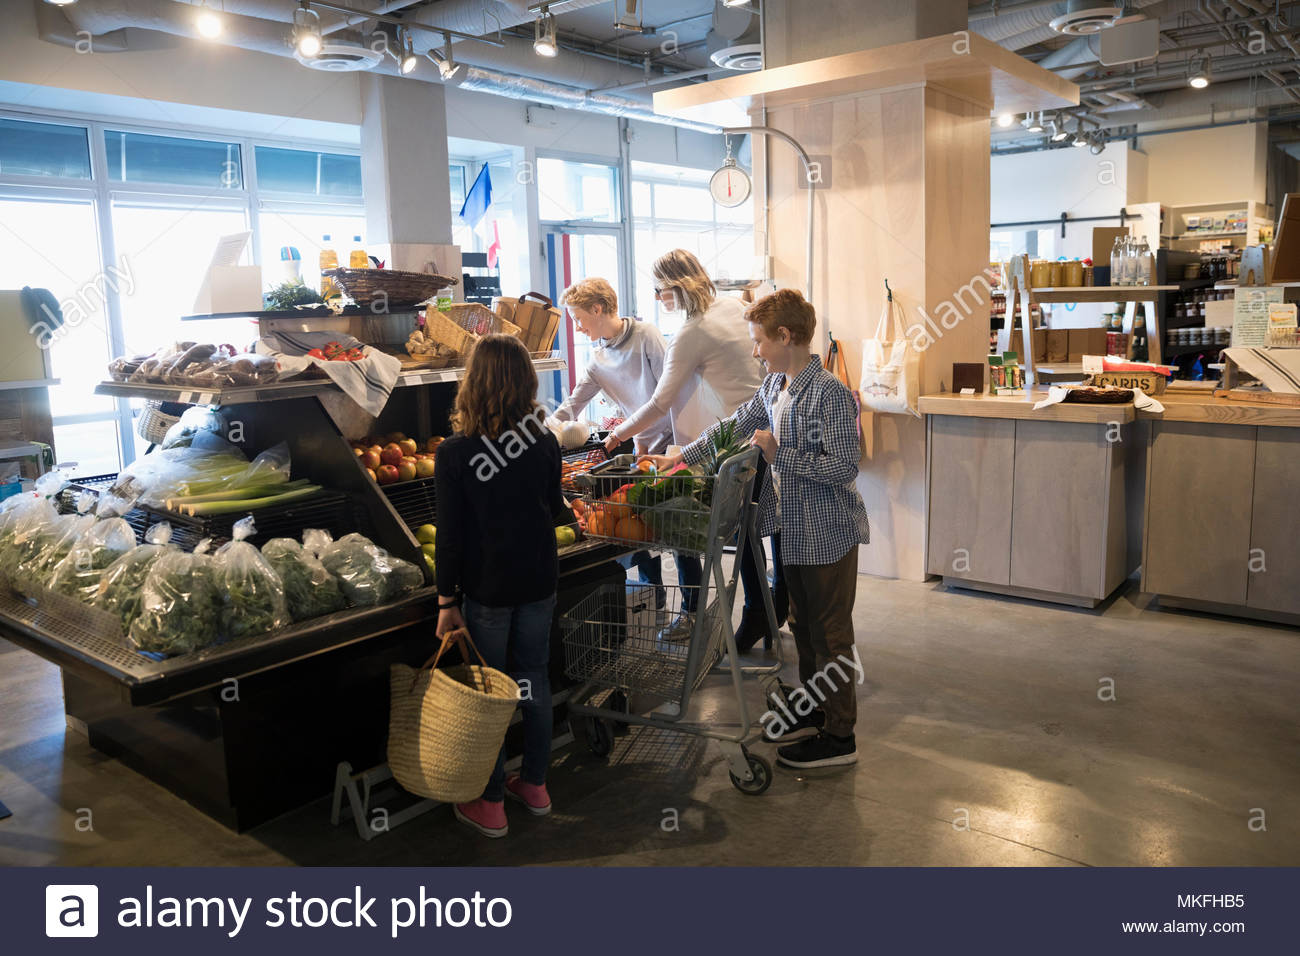 Family grocery shopping, picking out produce in market - Stock Image